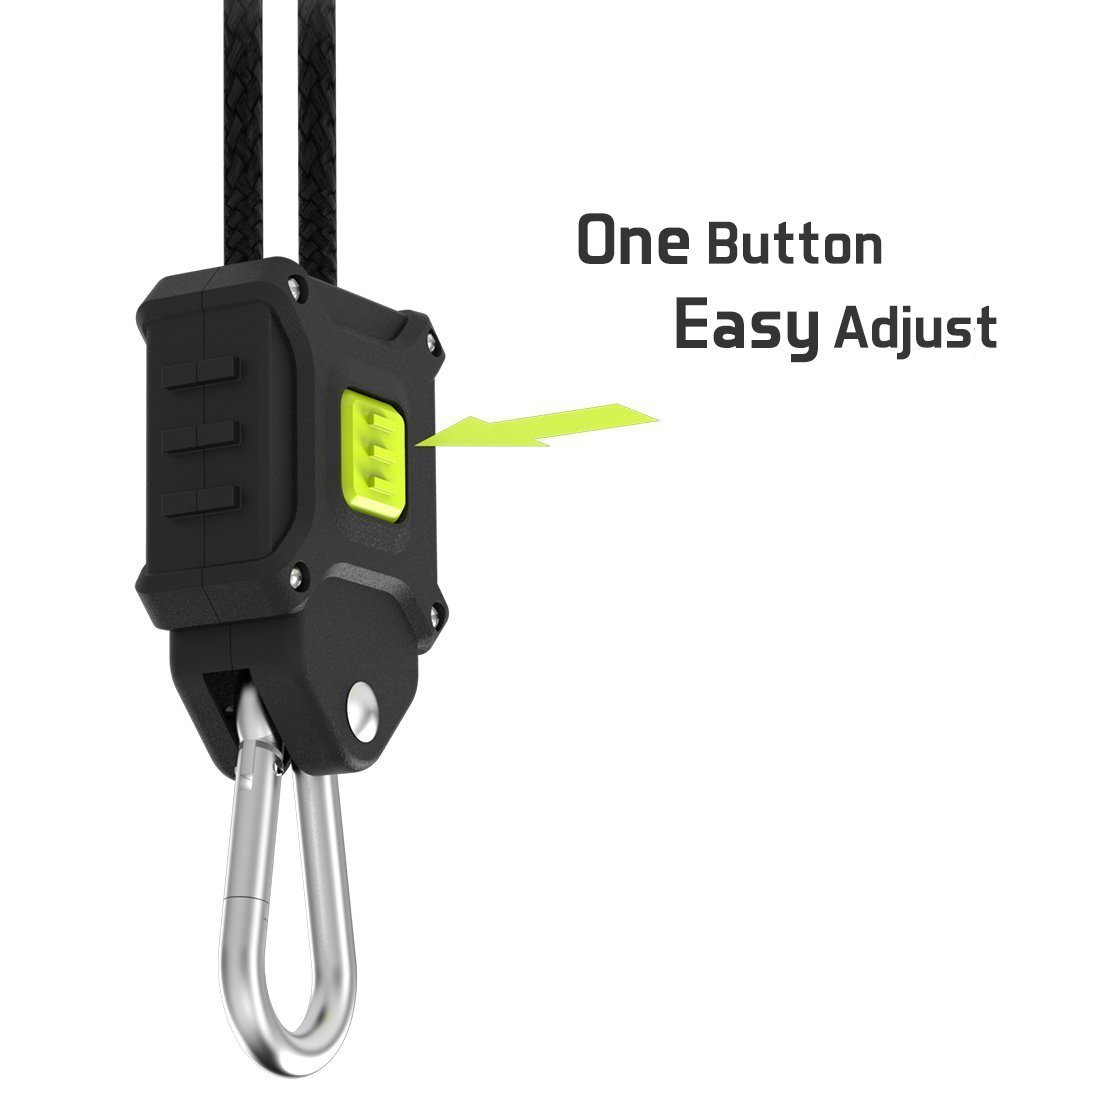 VIVOSUN 2-Pair 1/8 inch Rope Hanger w/Improved Design, More Convenience - Press Button Easy Adjust, Reinforced Metal Internal Gears, 8-ft Long & 150lbs Weight Capacity (Exclusively Patented) by VIVOSUN